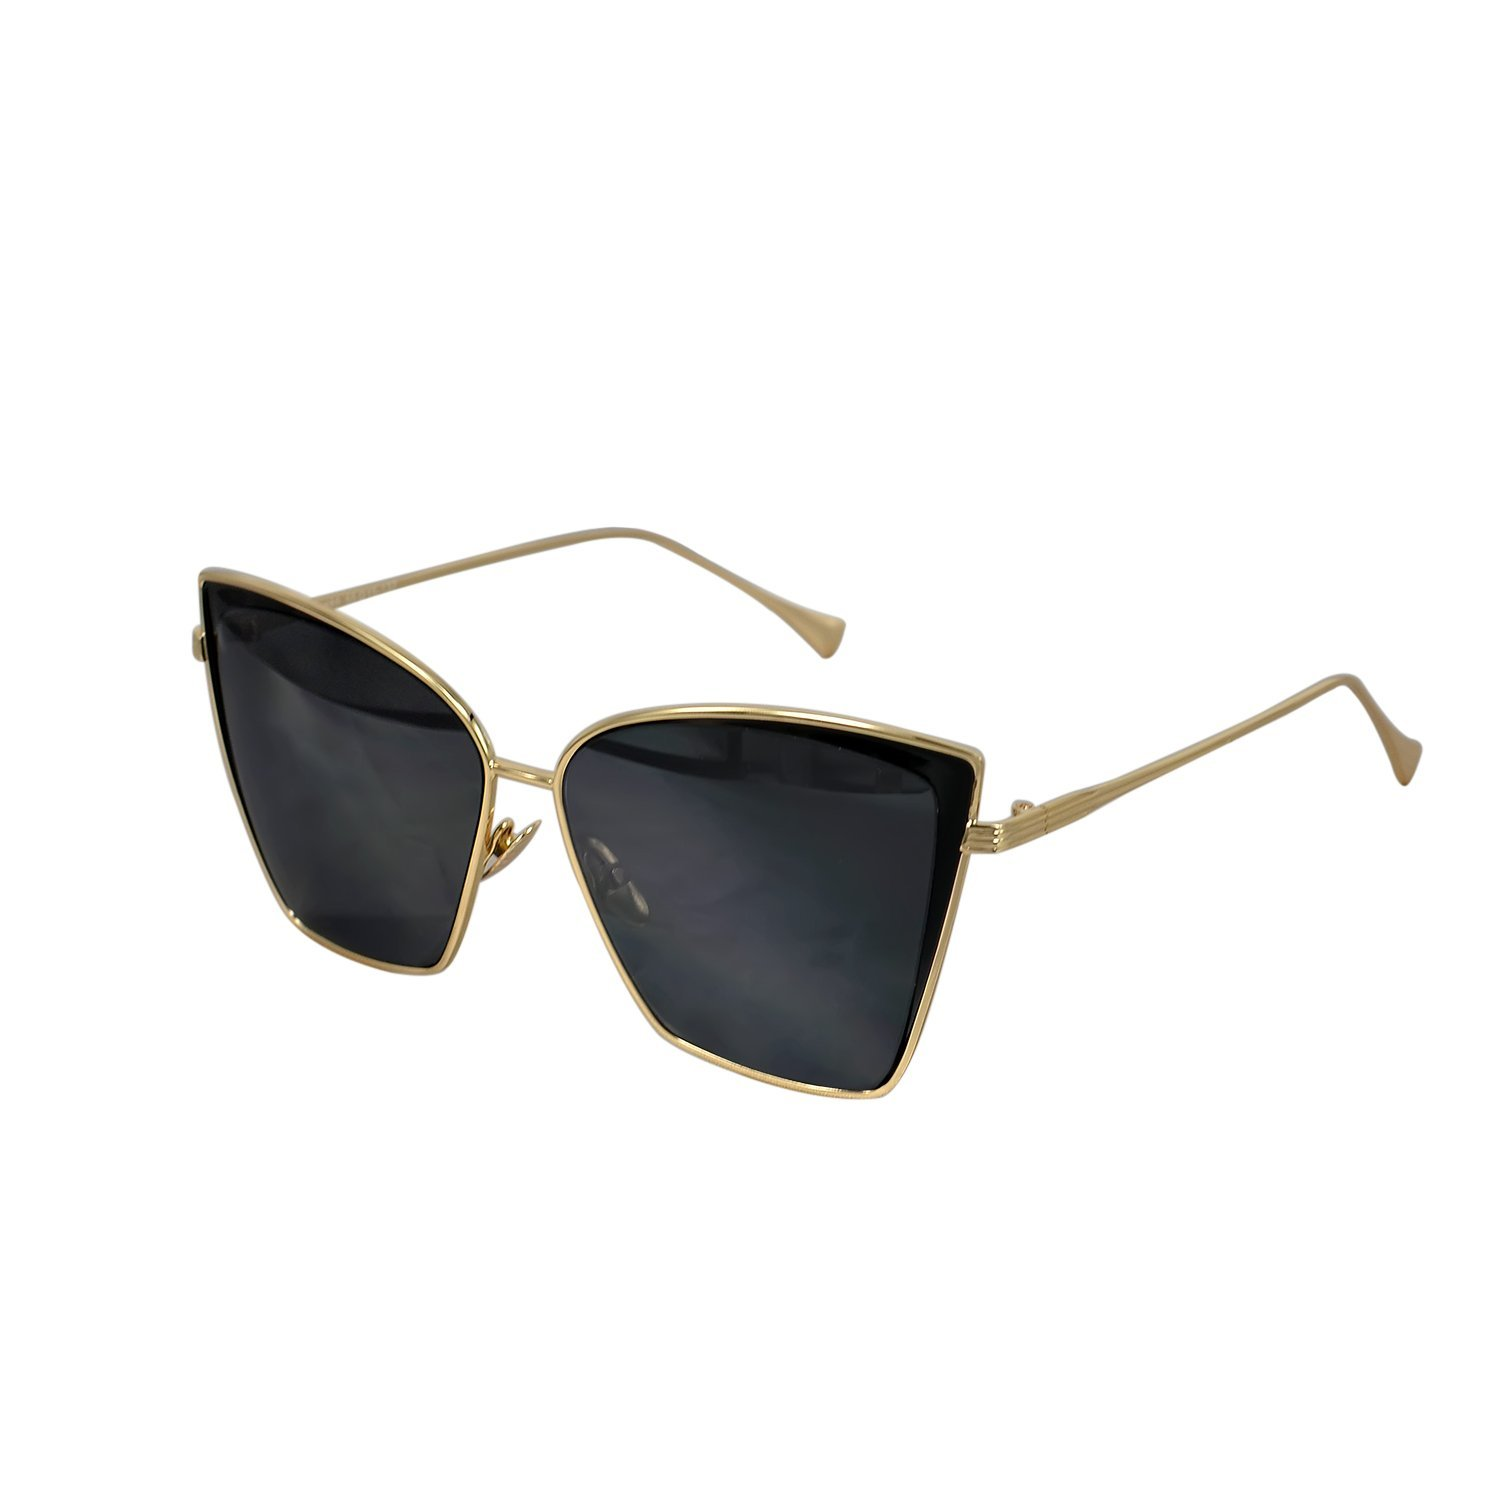 Ucspai Cateye Overside Sunglasses in Gold Frame Grey Lens